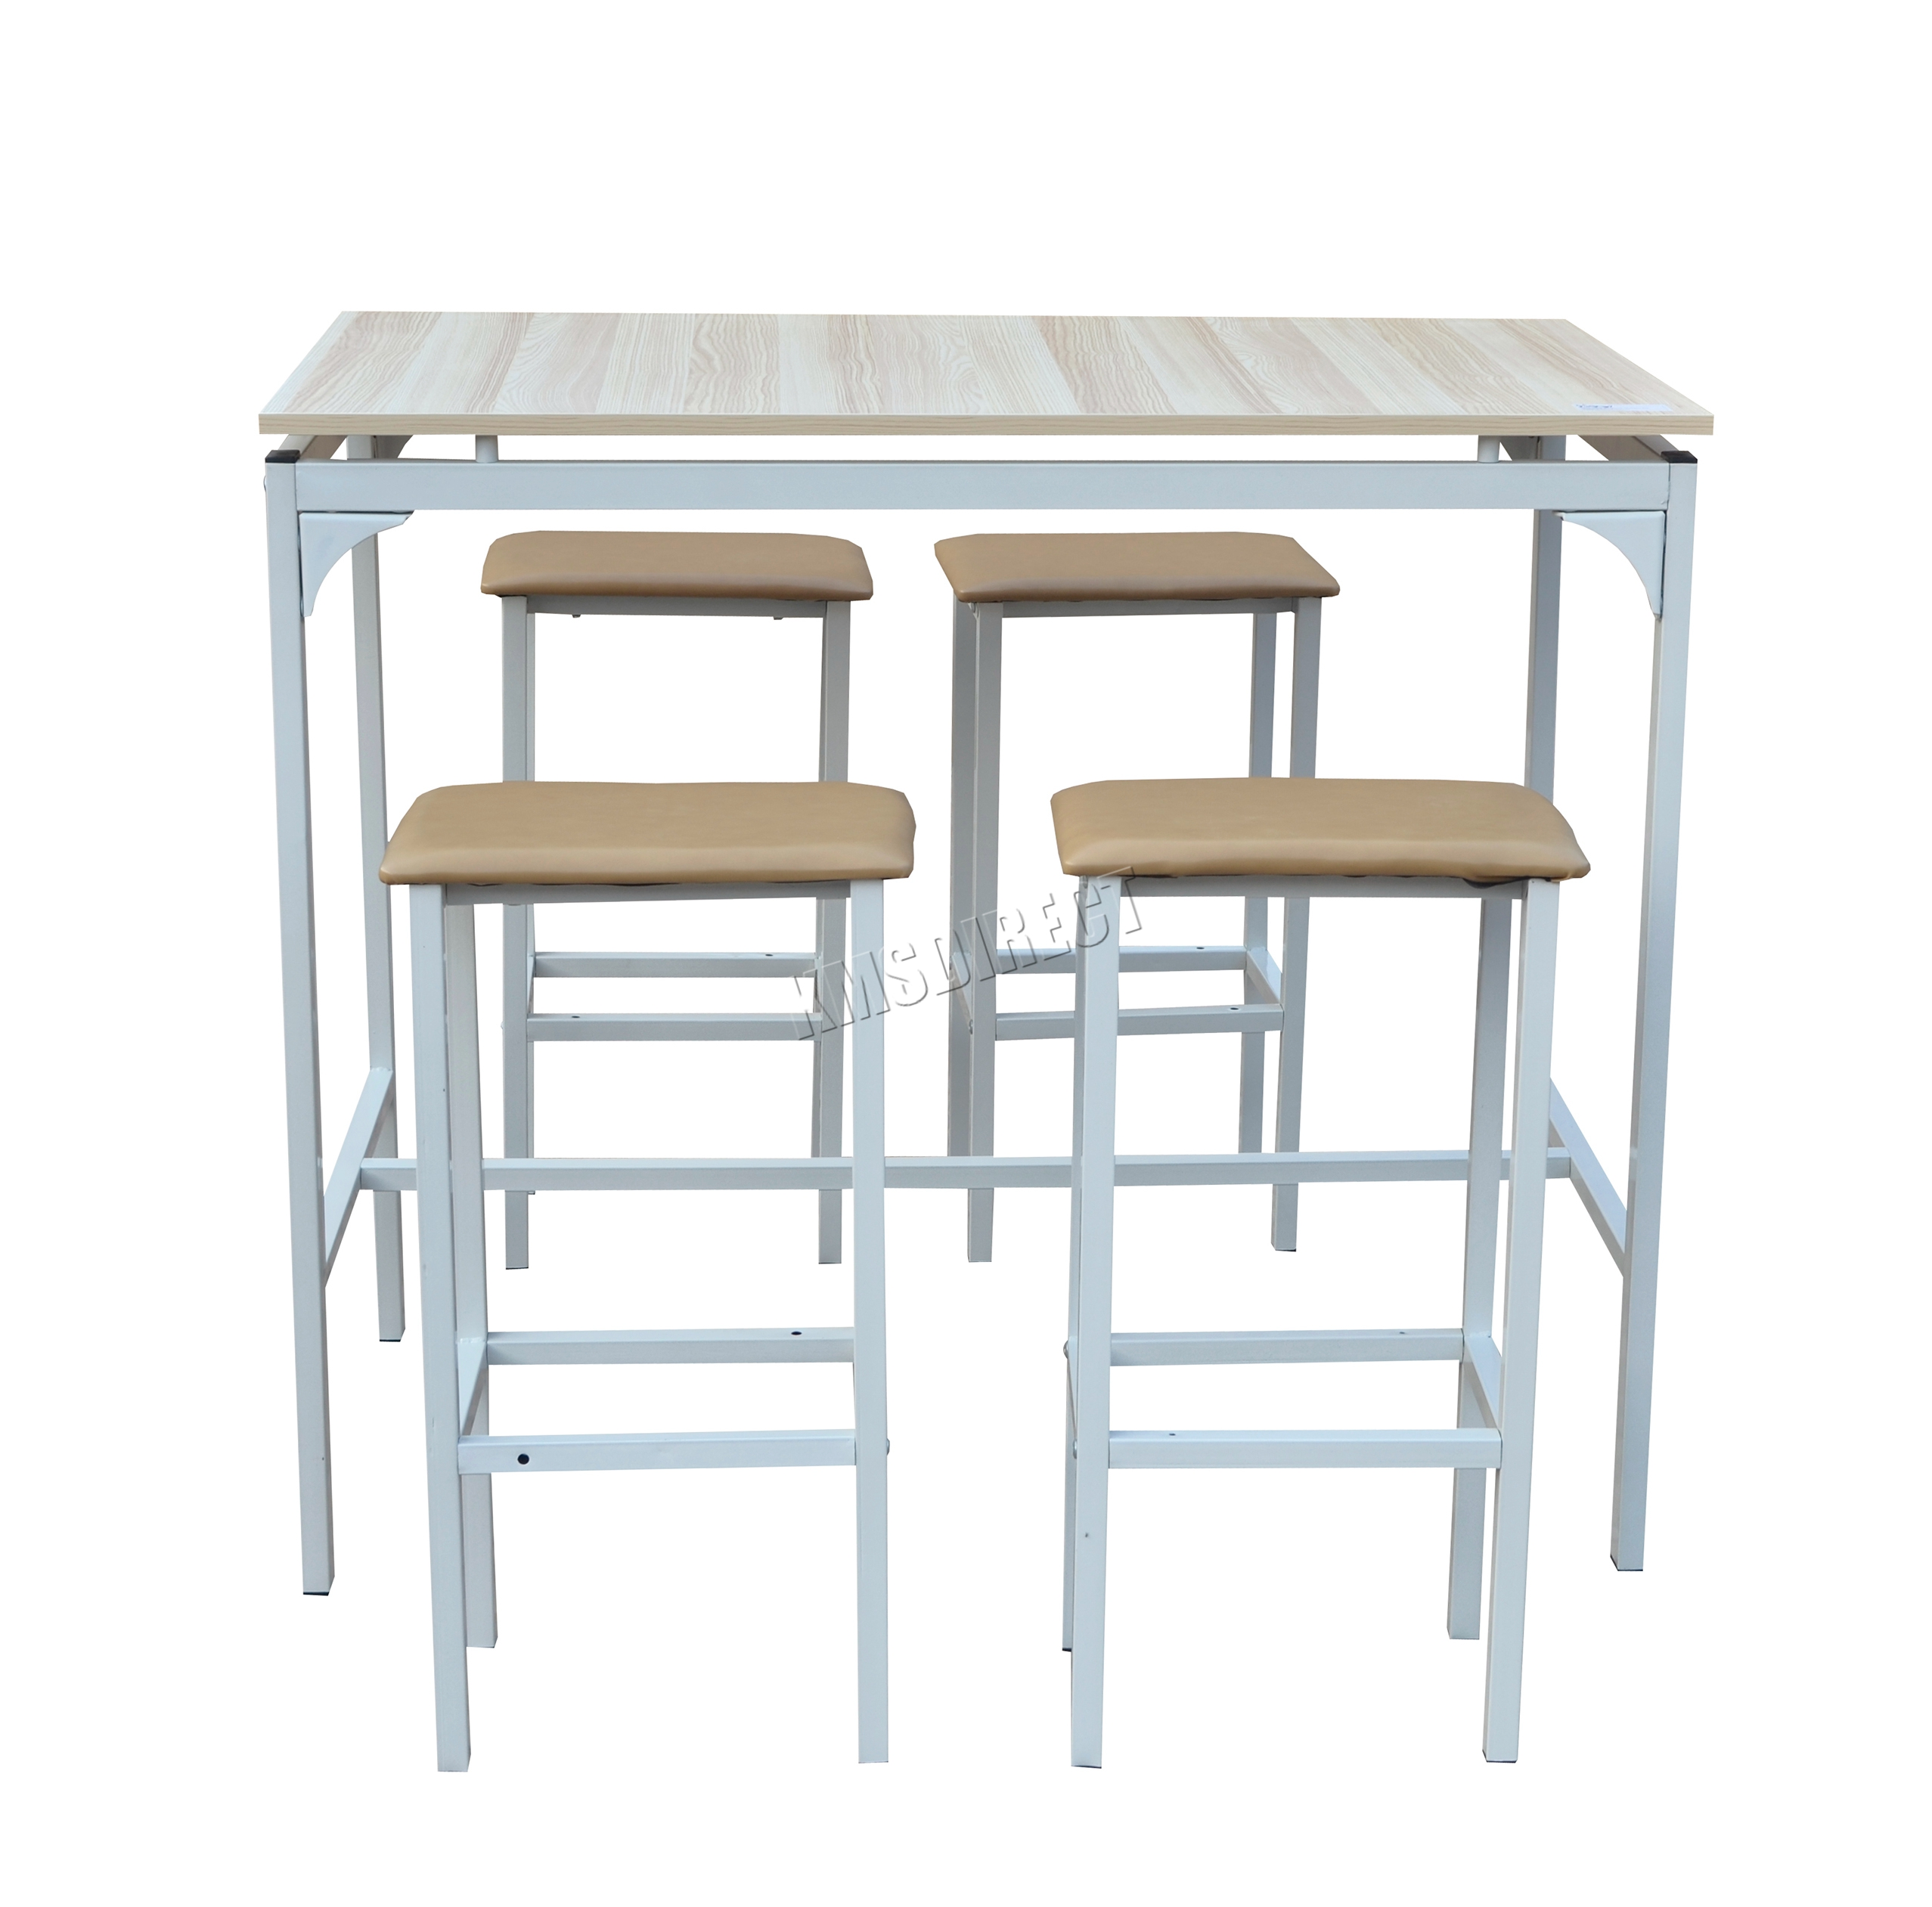 FoxHunter Pub Bar Breakfast Dining Table With 4 Stools Room Set